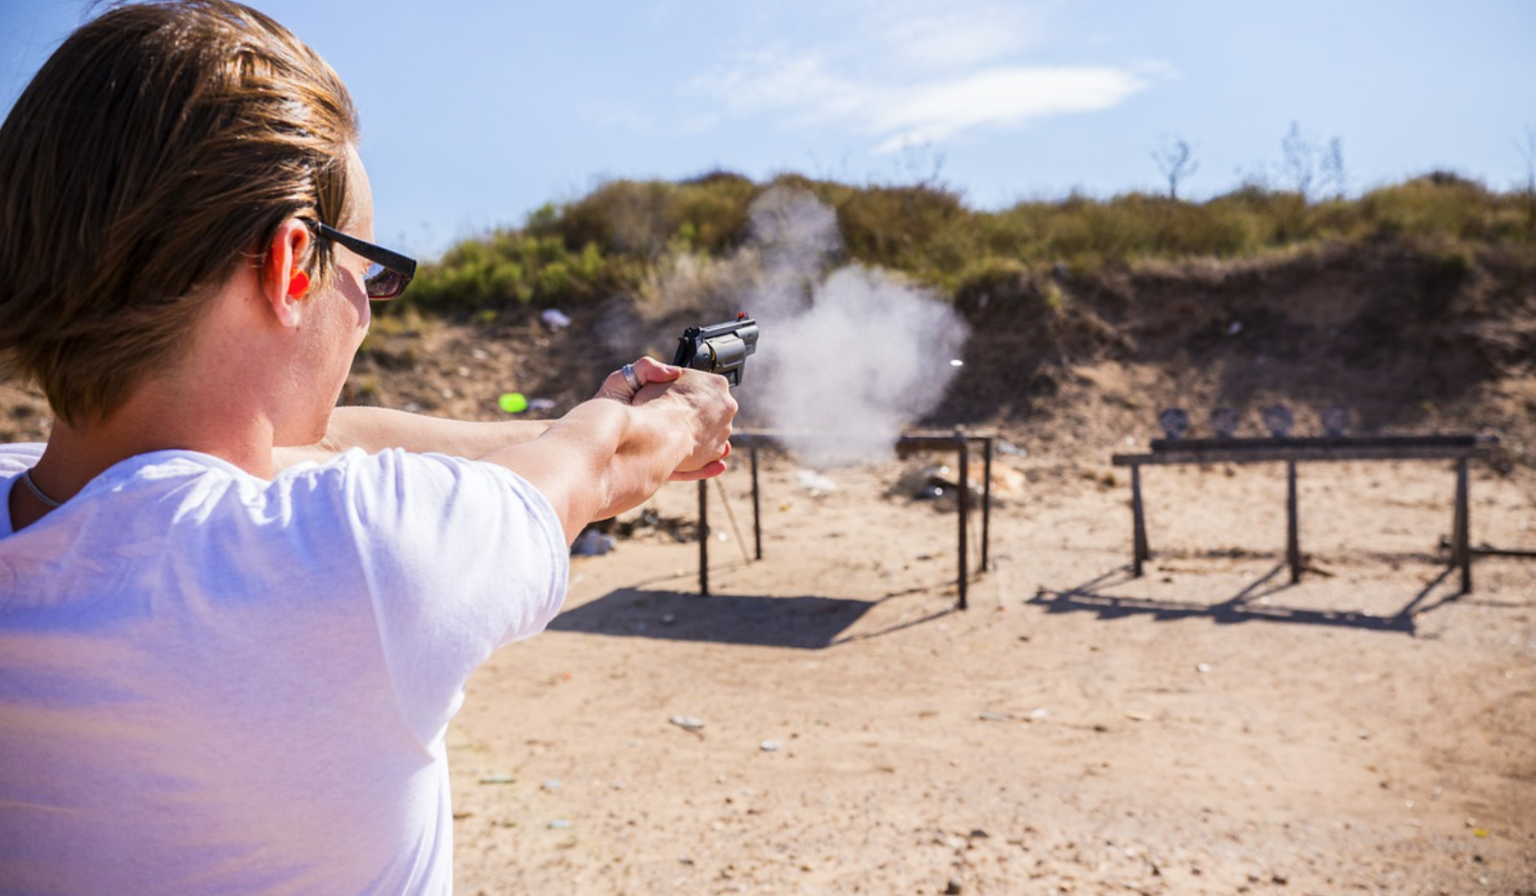 Virginia: Outdoor shooting ranges are a threat and will be shut down